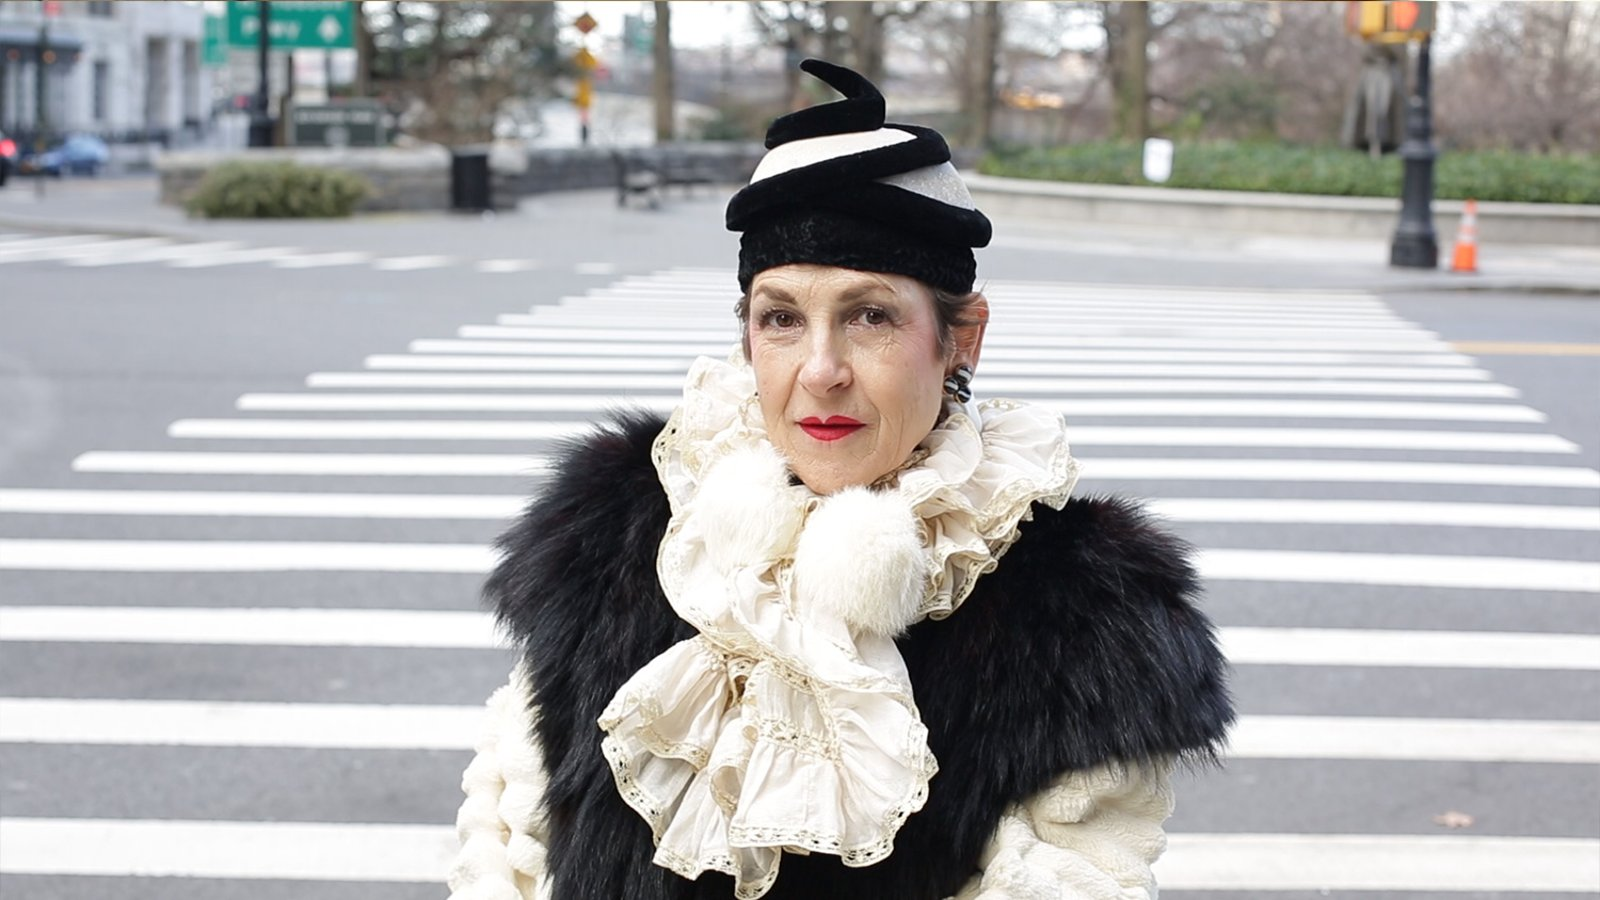 Advanced Style - Elderly New Yorkers With Eclectic Personal Style